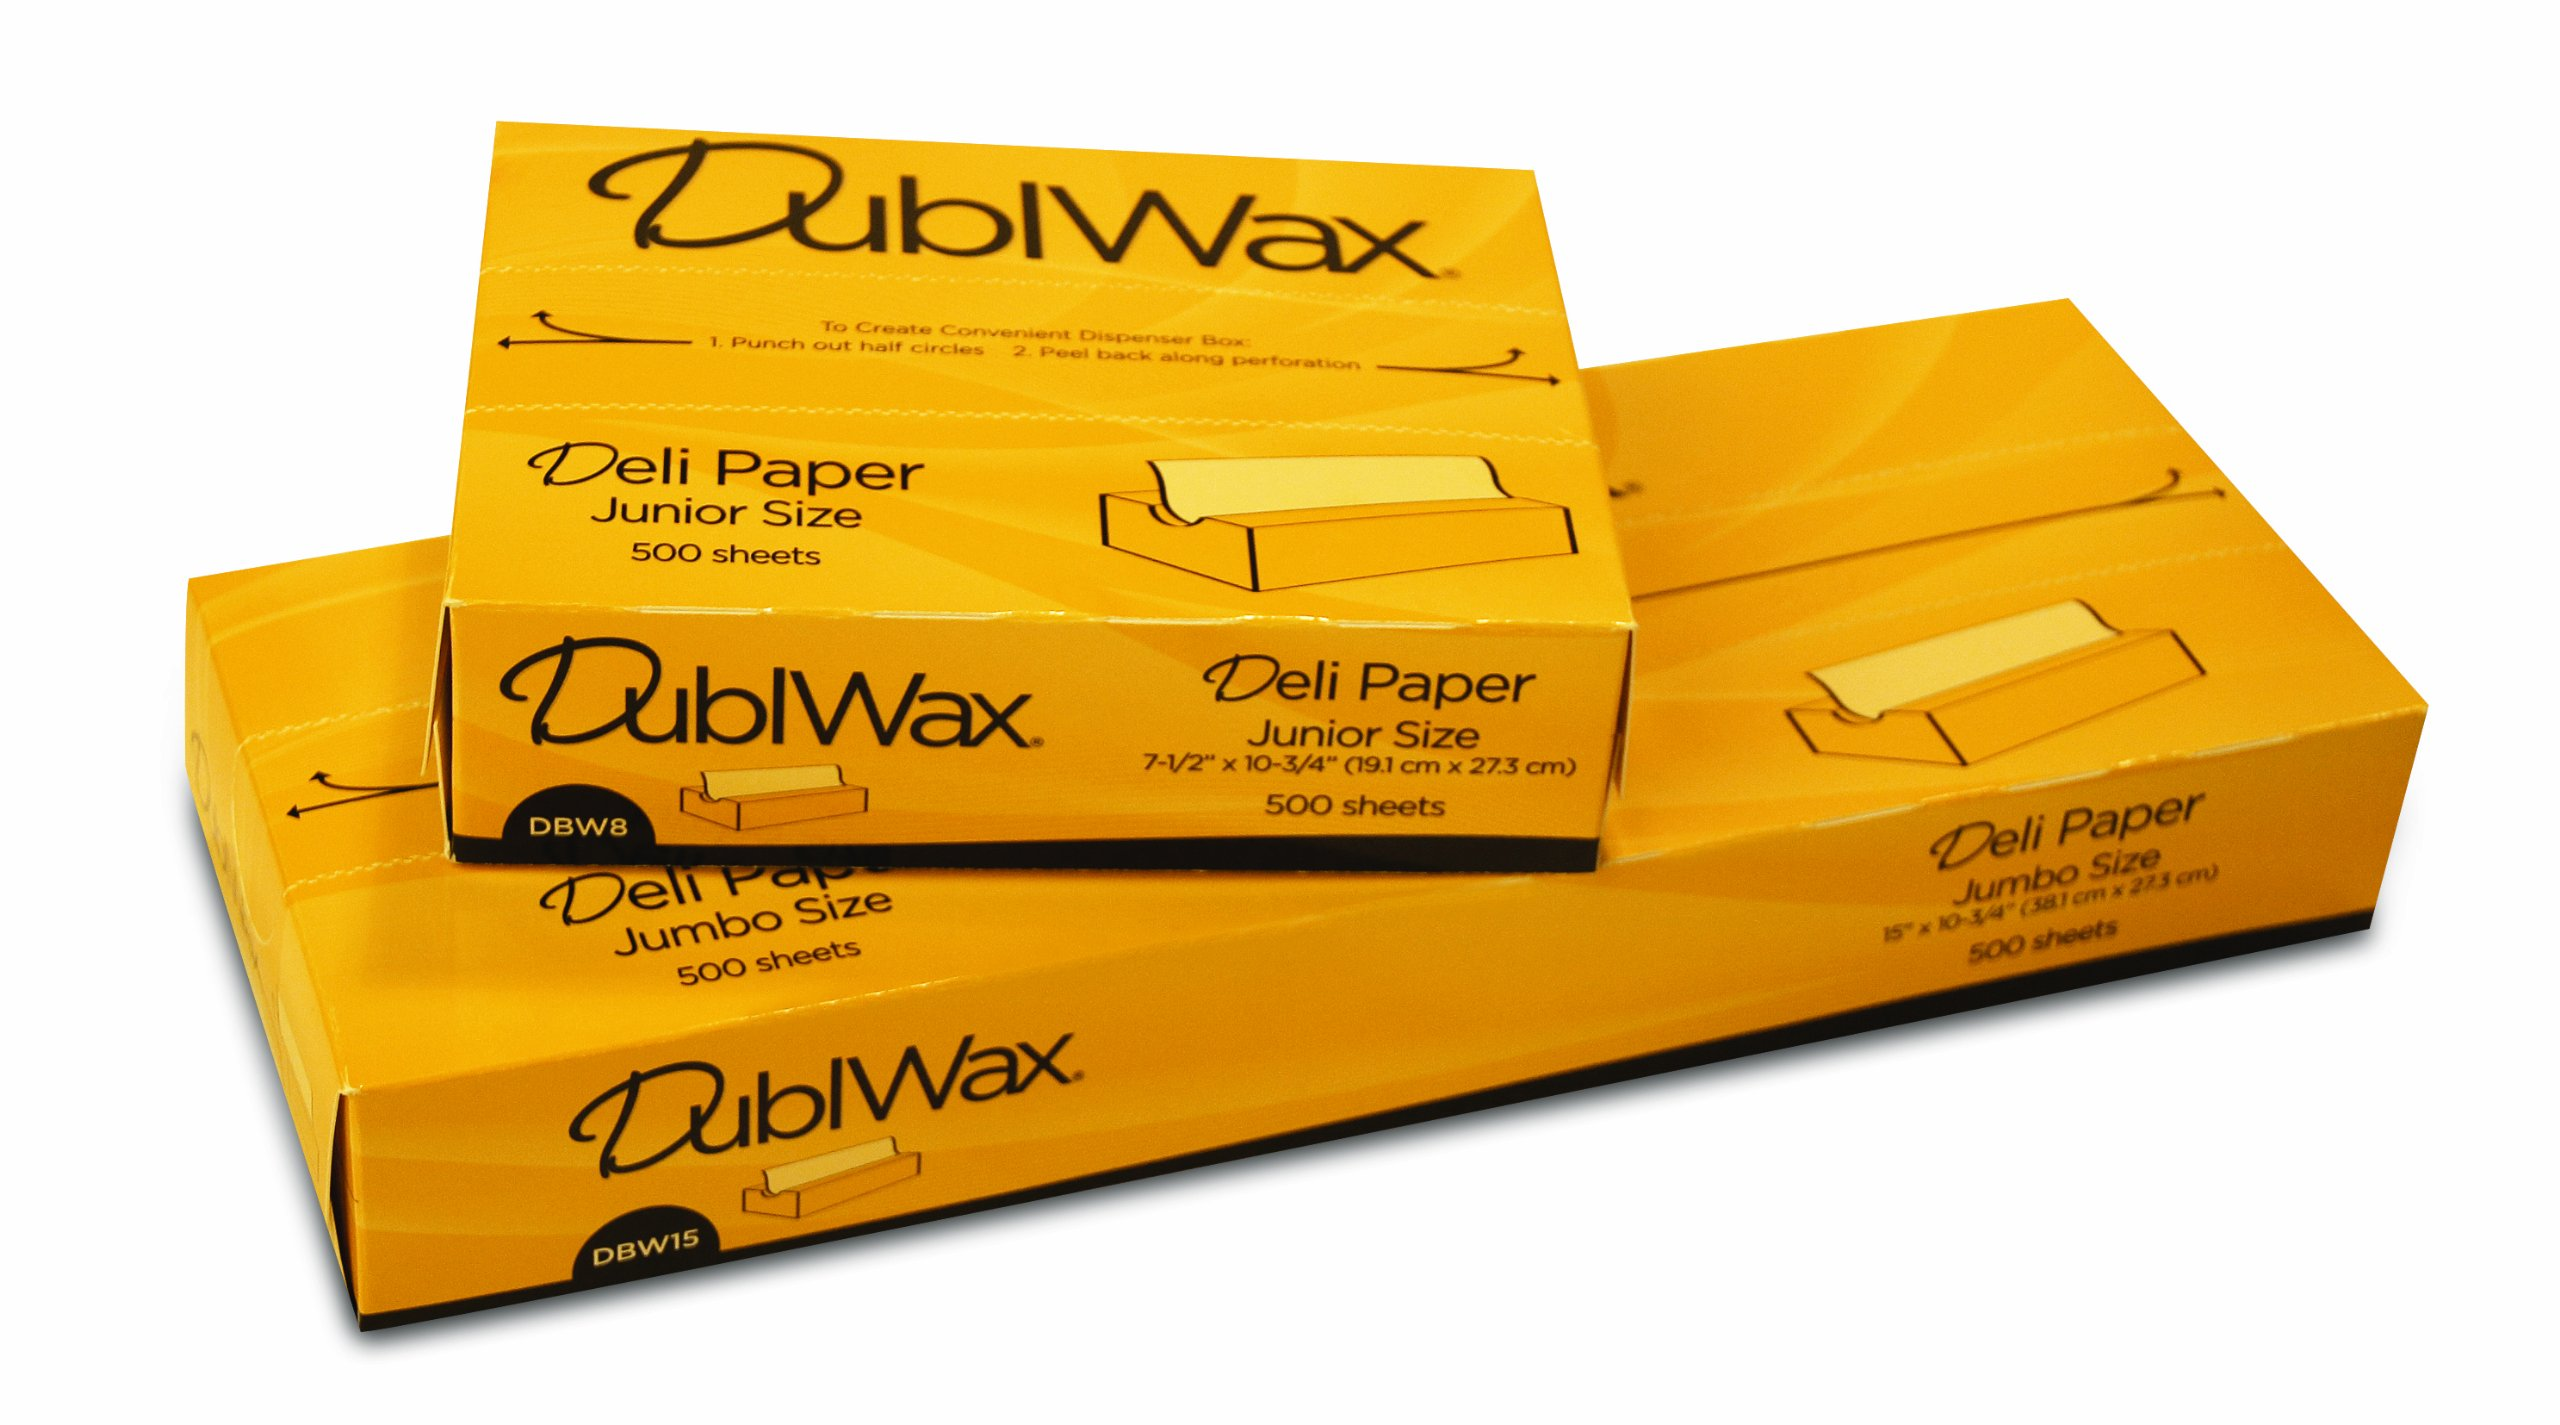 Bagcraft Papercon 018012 Interfolded Dubl Wax Deli Paper, 10-3/4'' Length x 12'' Width, DBW12 White (8 Packs of 750)